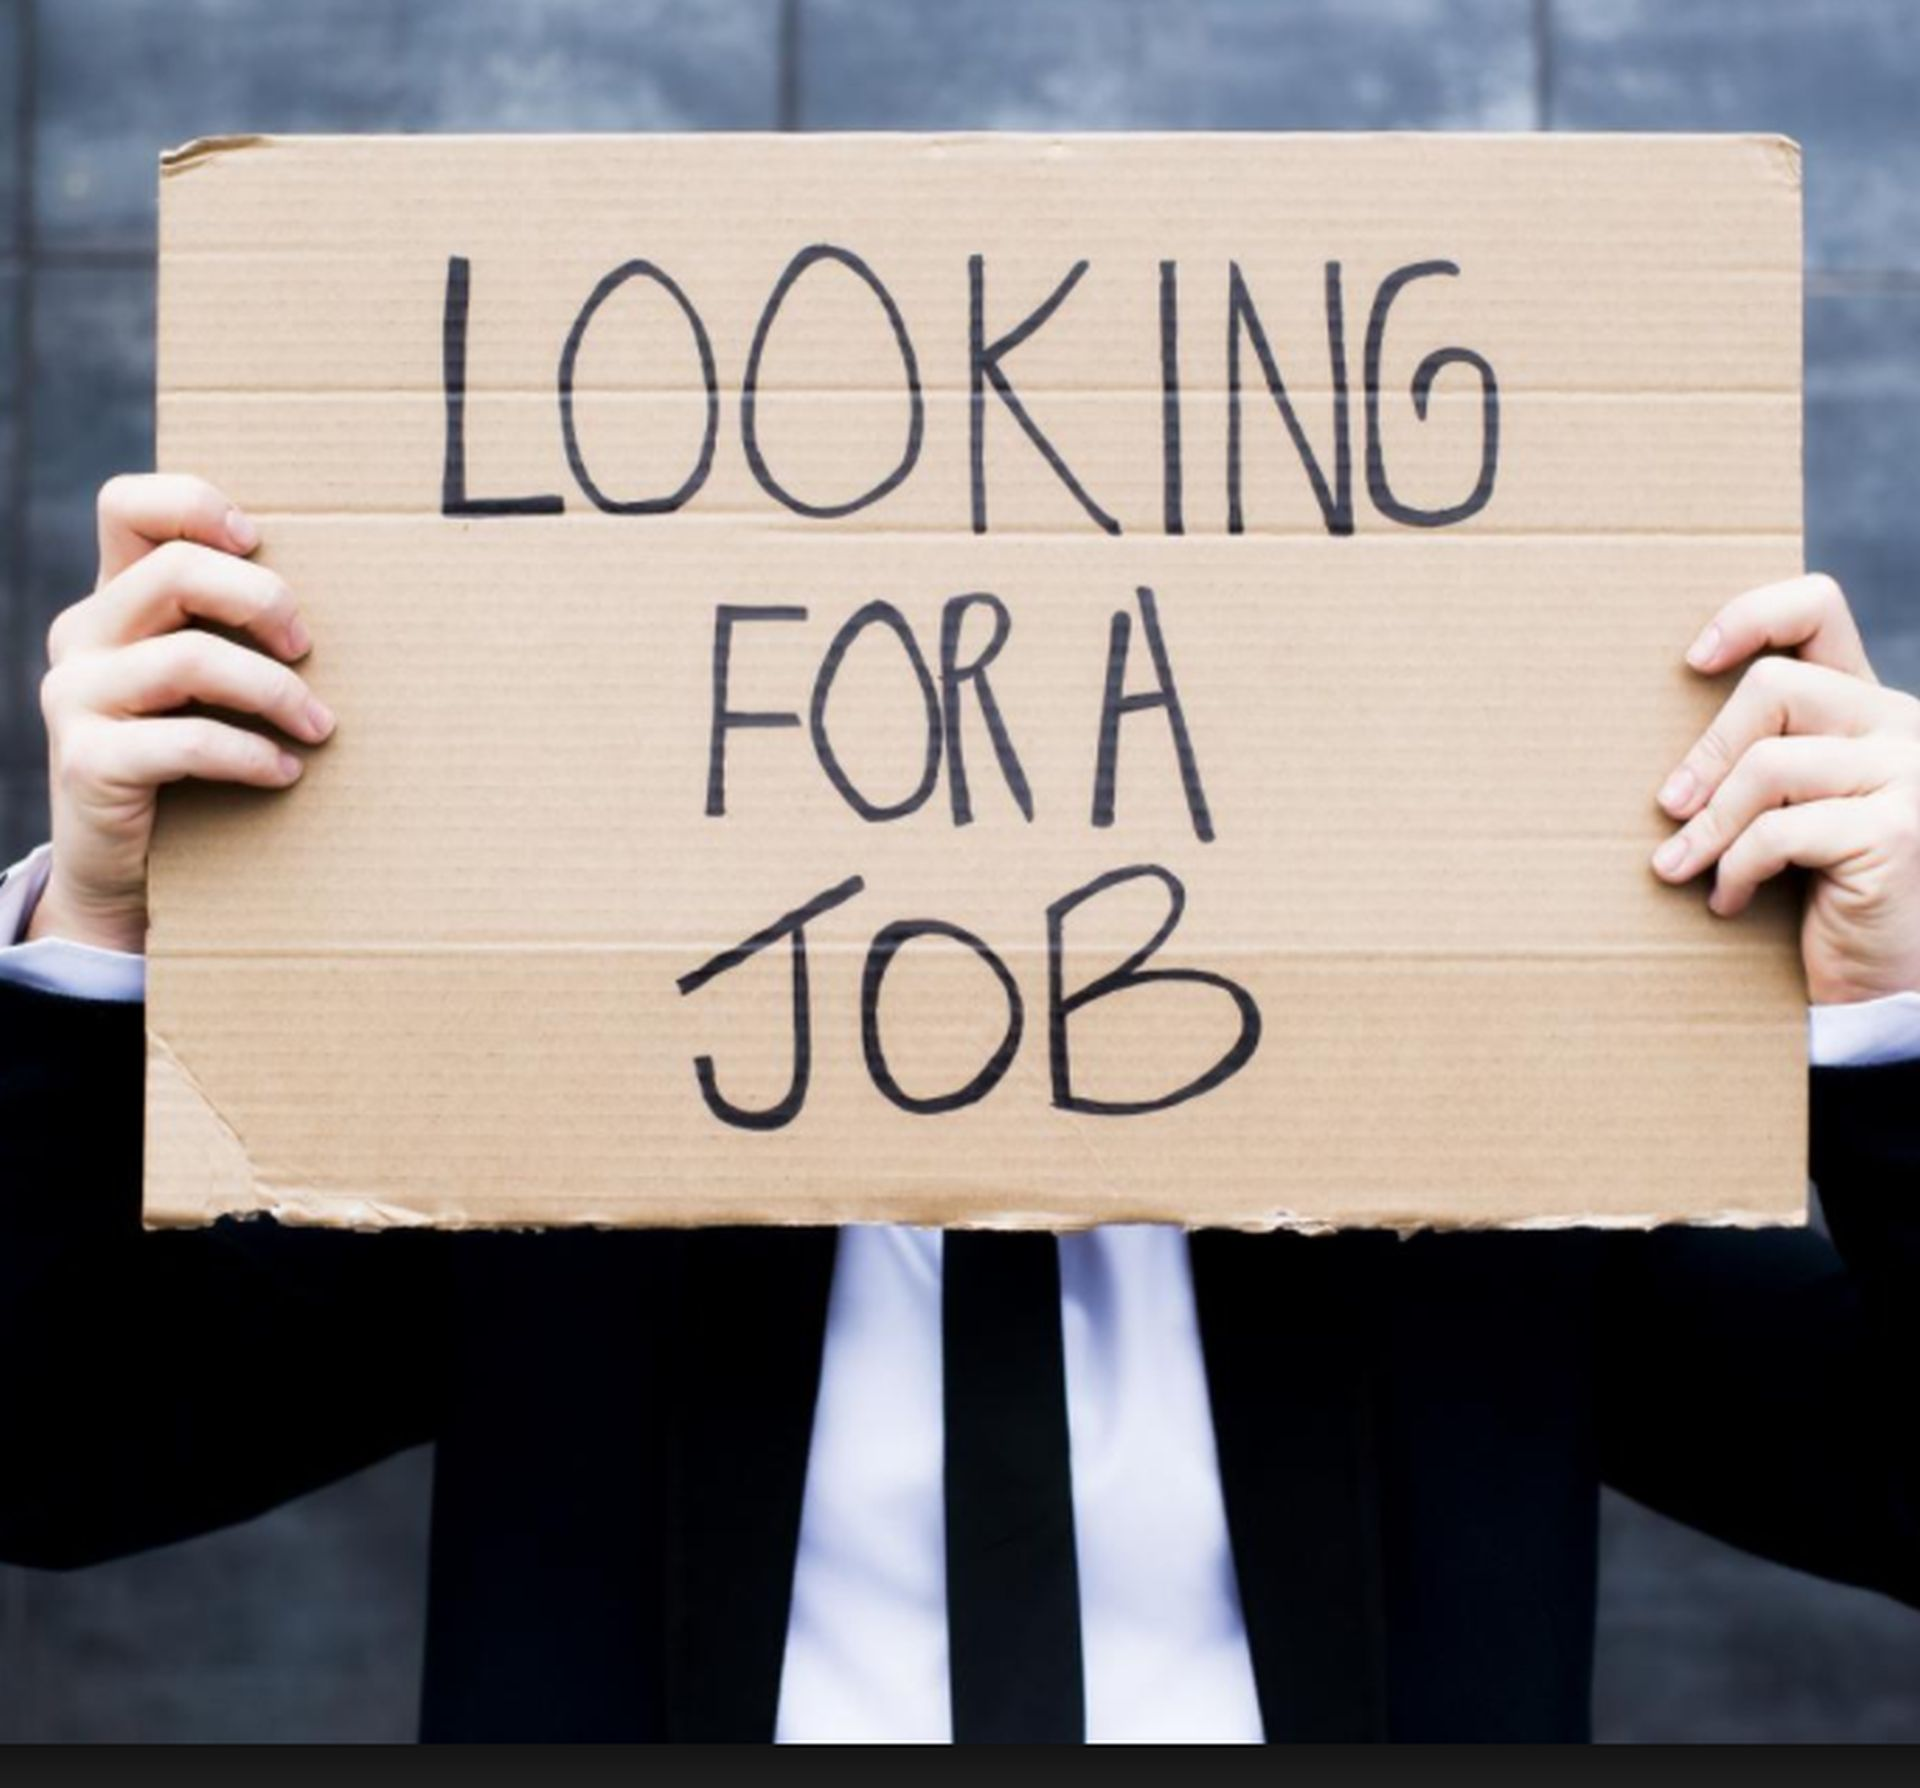 Maine's seasonally adjusted unemployment rate of 3.5 percent for June was up from 3.2 percent in May. COURTESY PHOTO